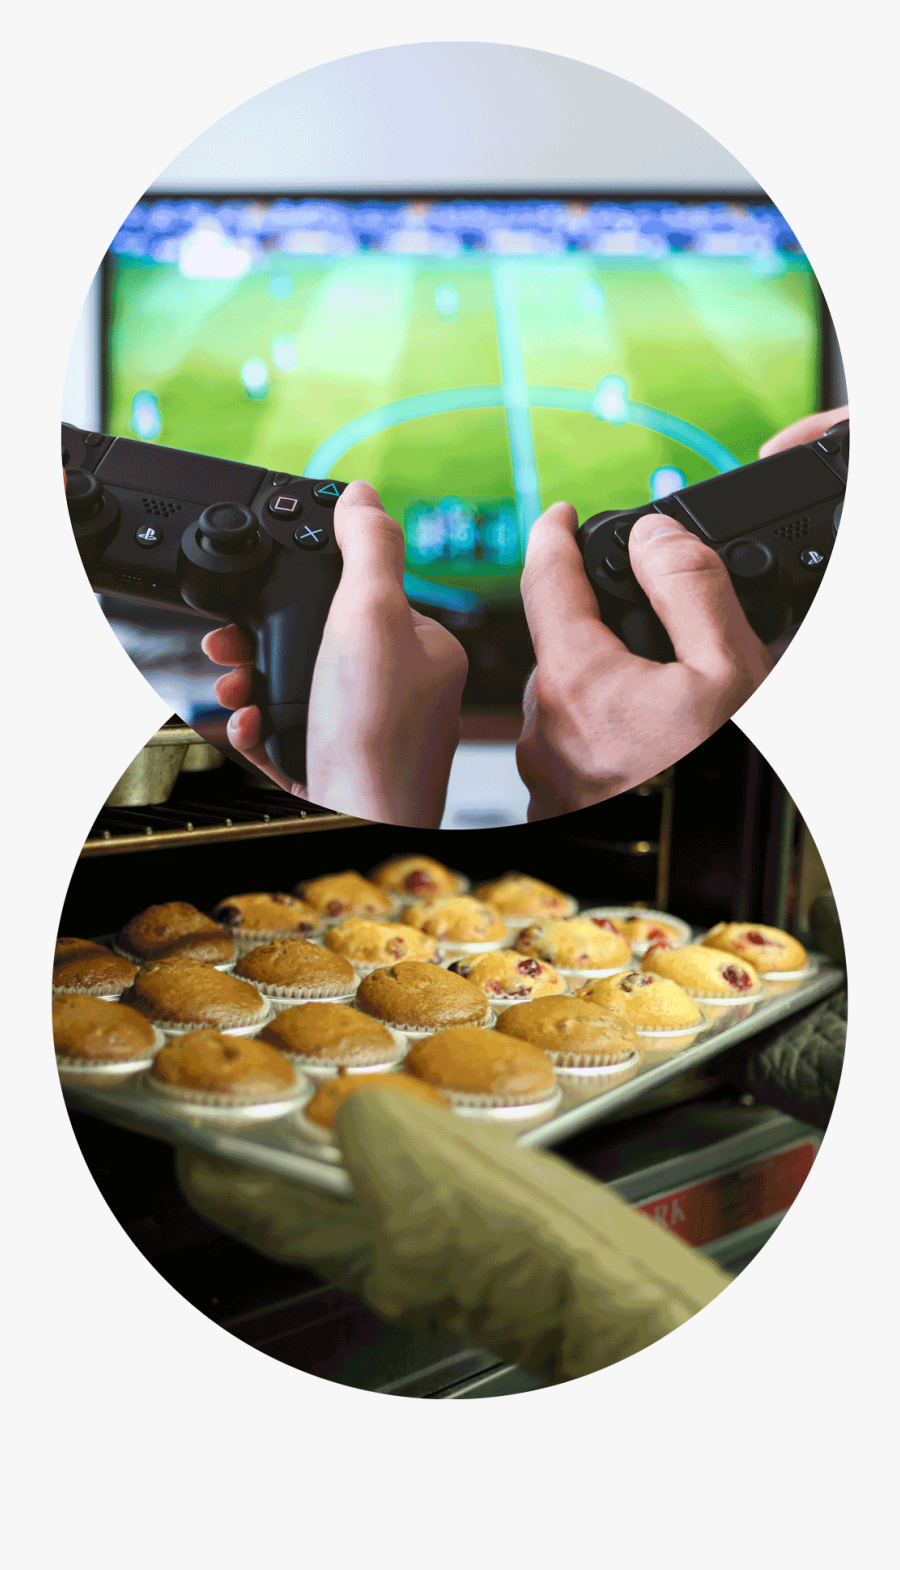 Two Sets Of Hands Hold Playstation Controllers In Front - Safety When Using Online Games, Transparent Clipart